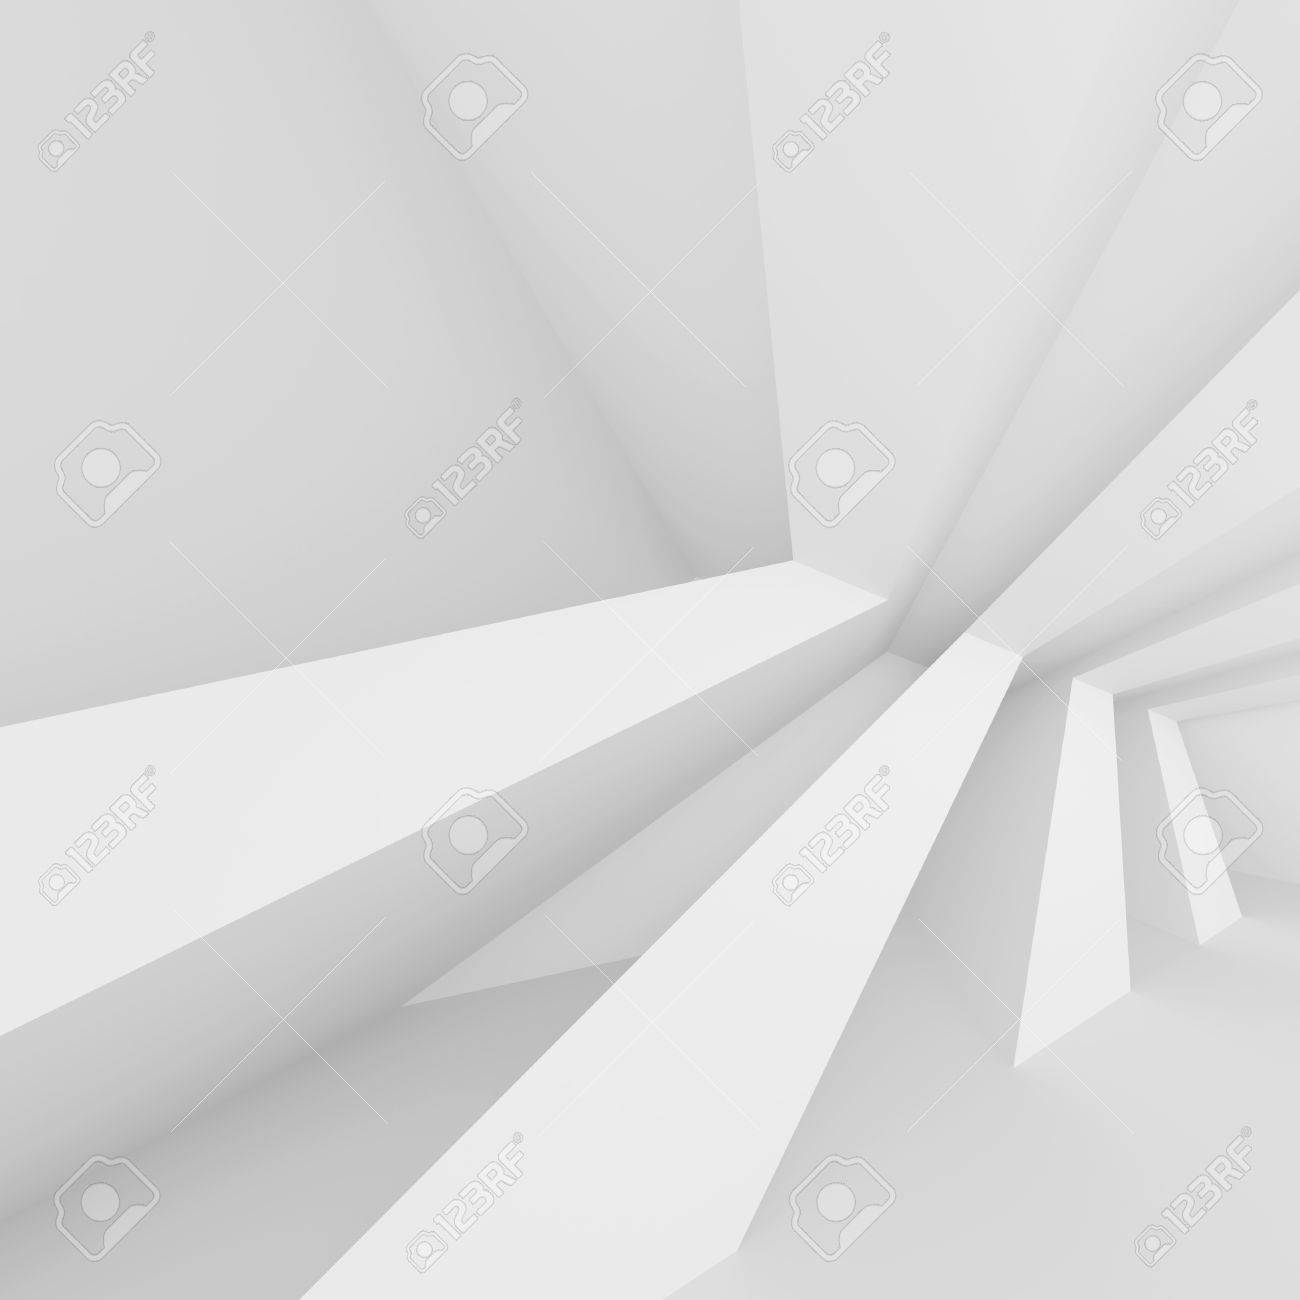 3d Illustration Of White Column Interior Design Abstract Architecture Stock Photo Picture And Royalty Free Image Image 62493704